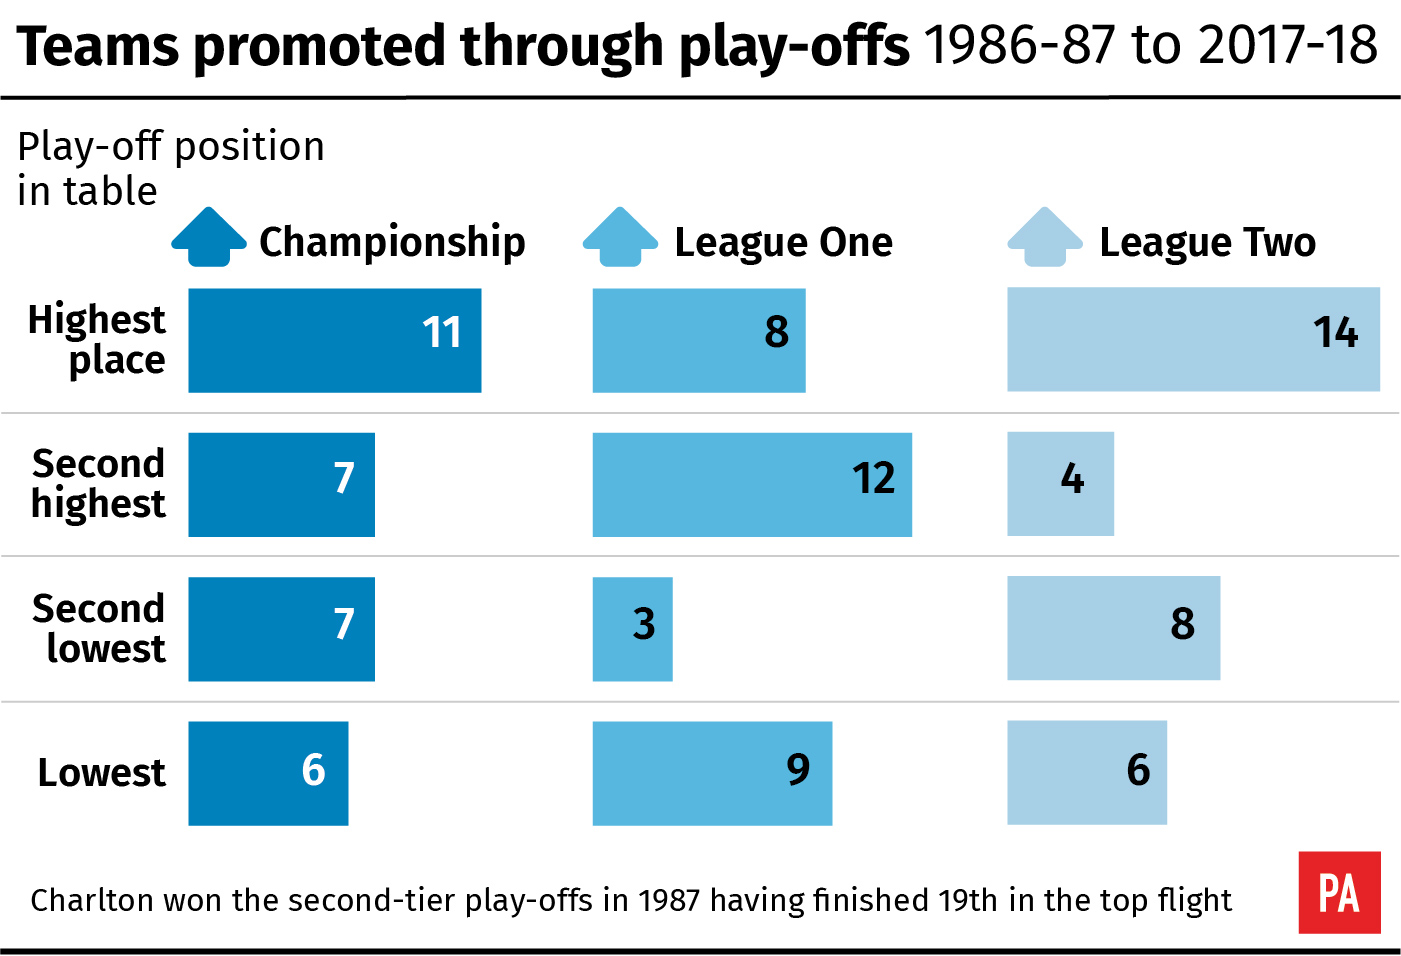 Teams promoted through Football League play-offs, by position